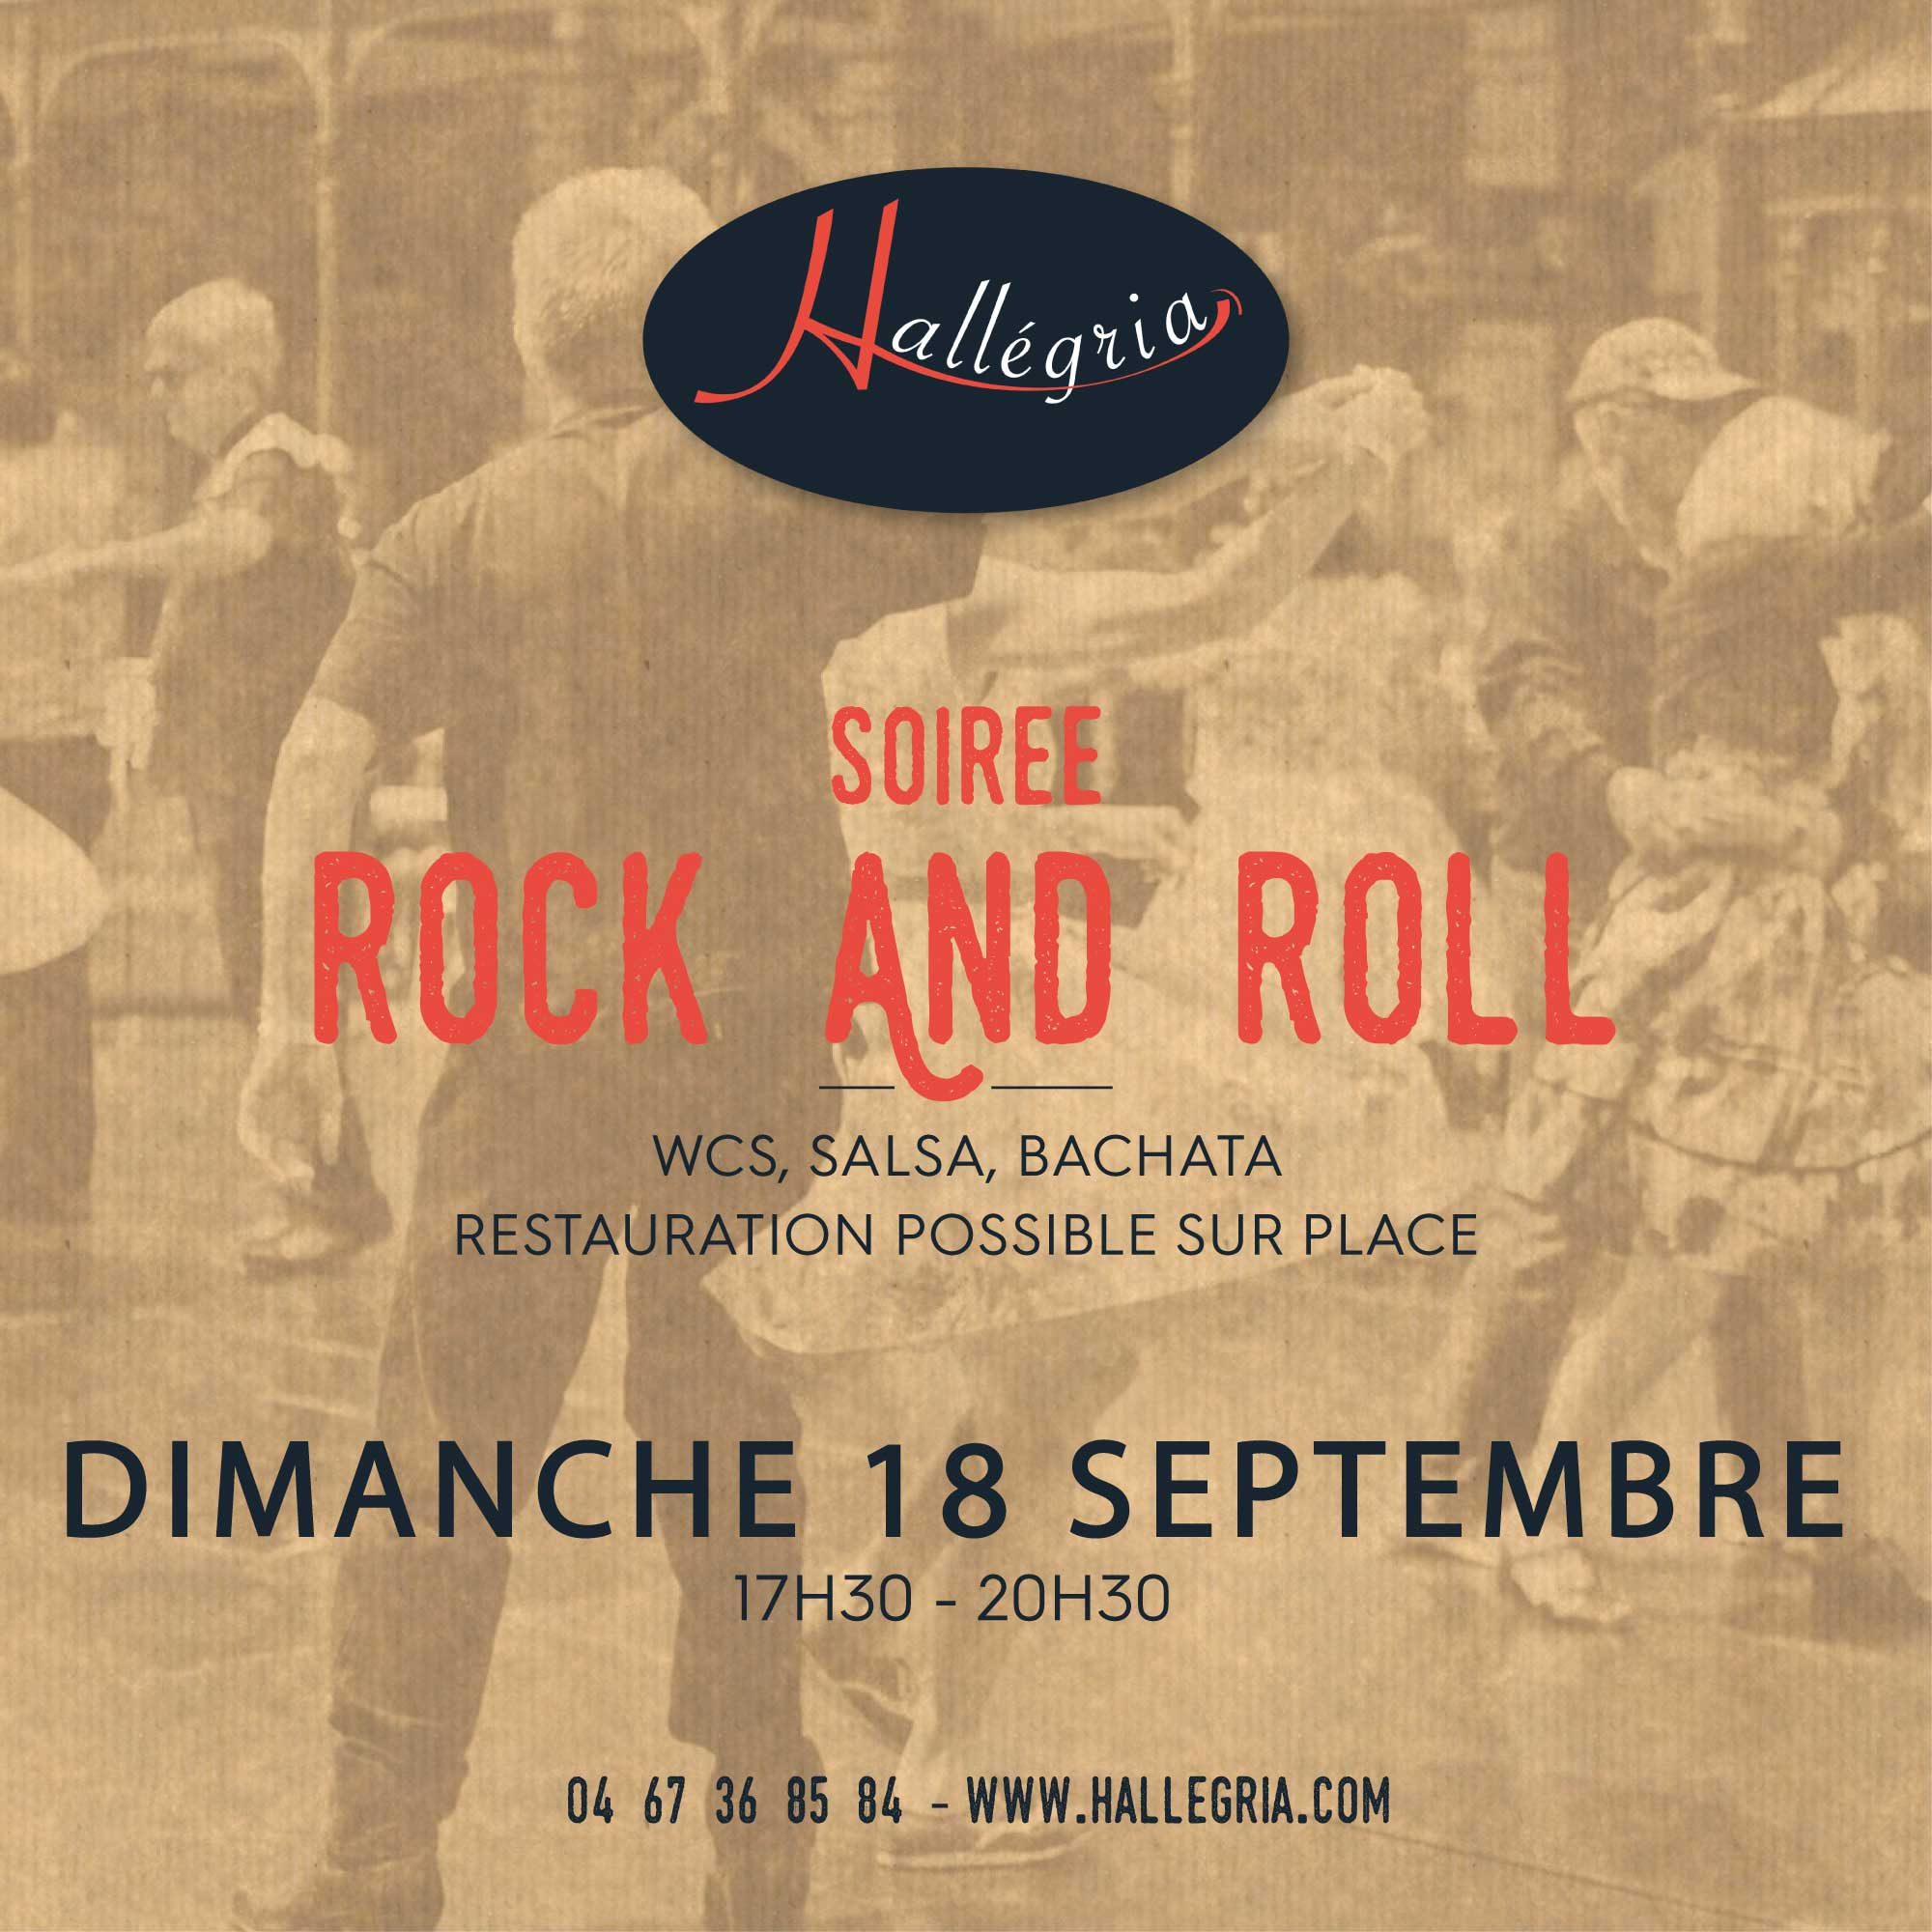 DIMANCHE 18 SEPTEMBRE : ROCK AND ROLL